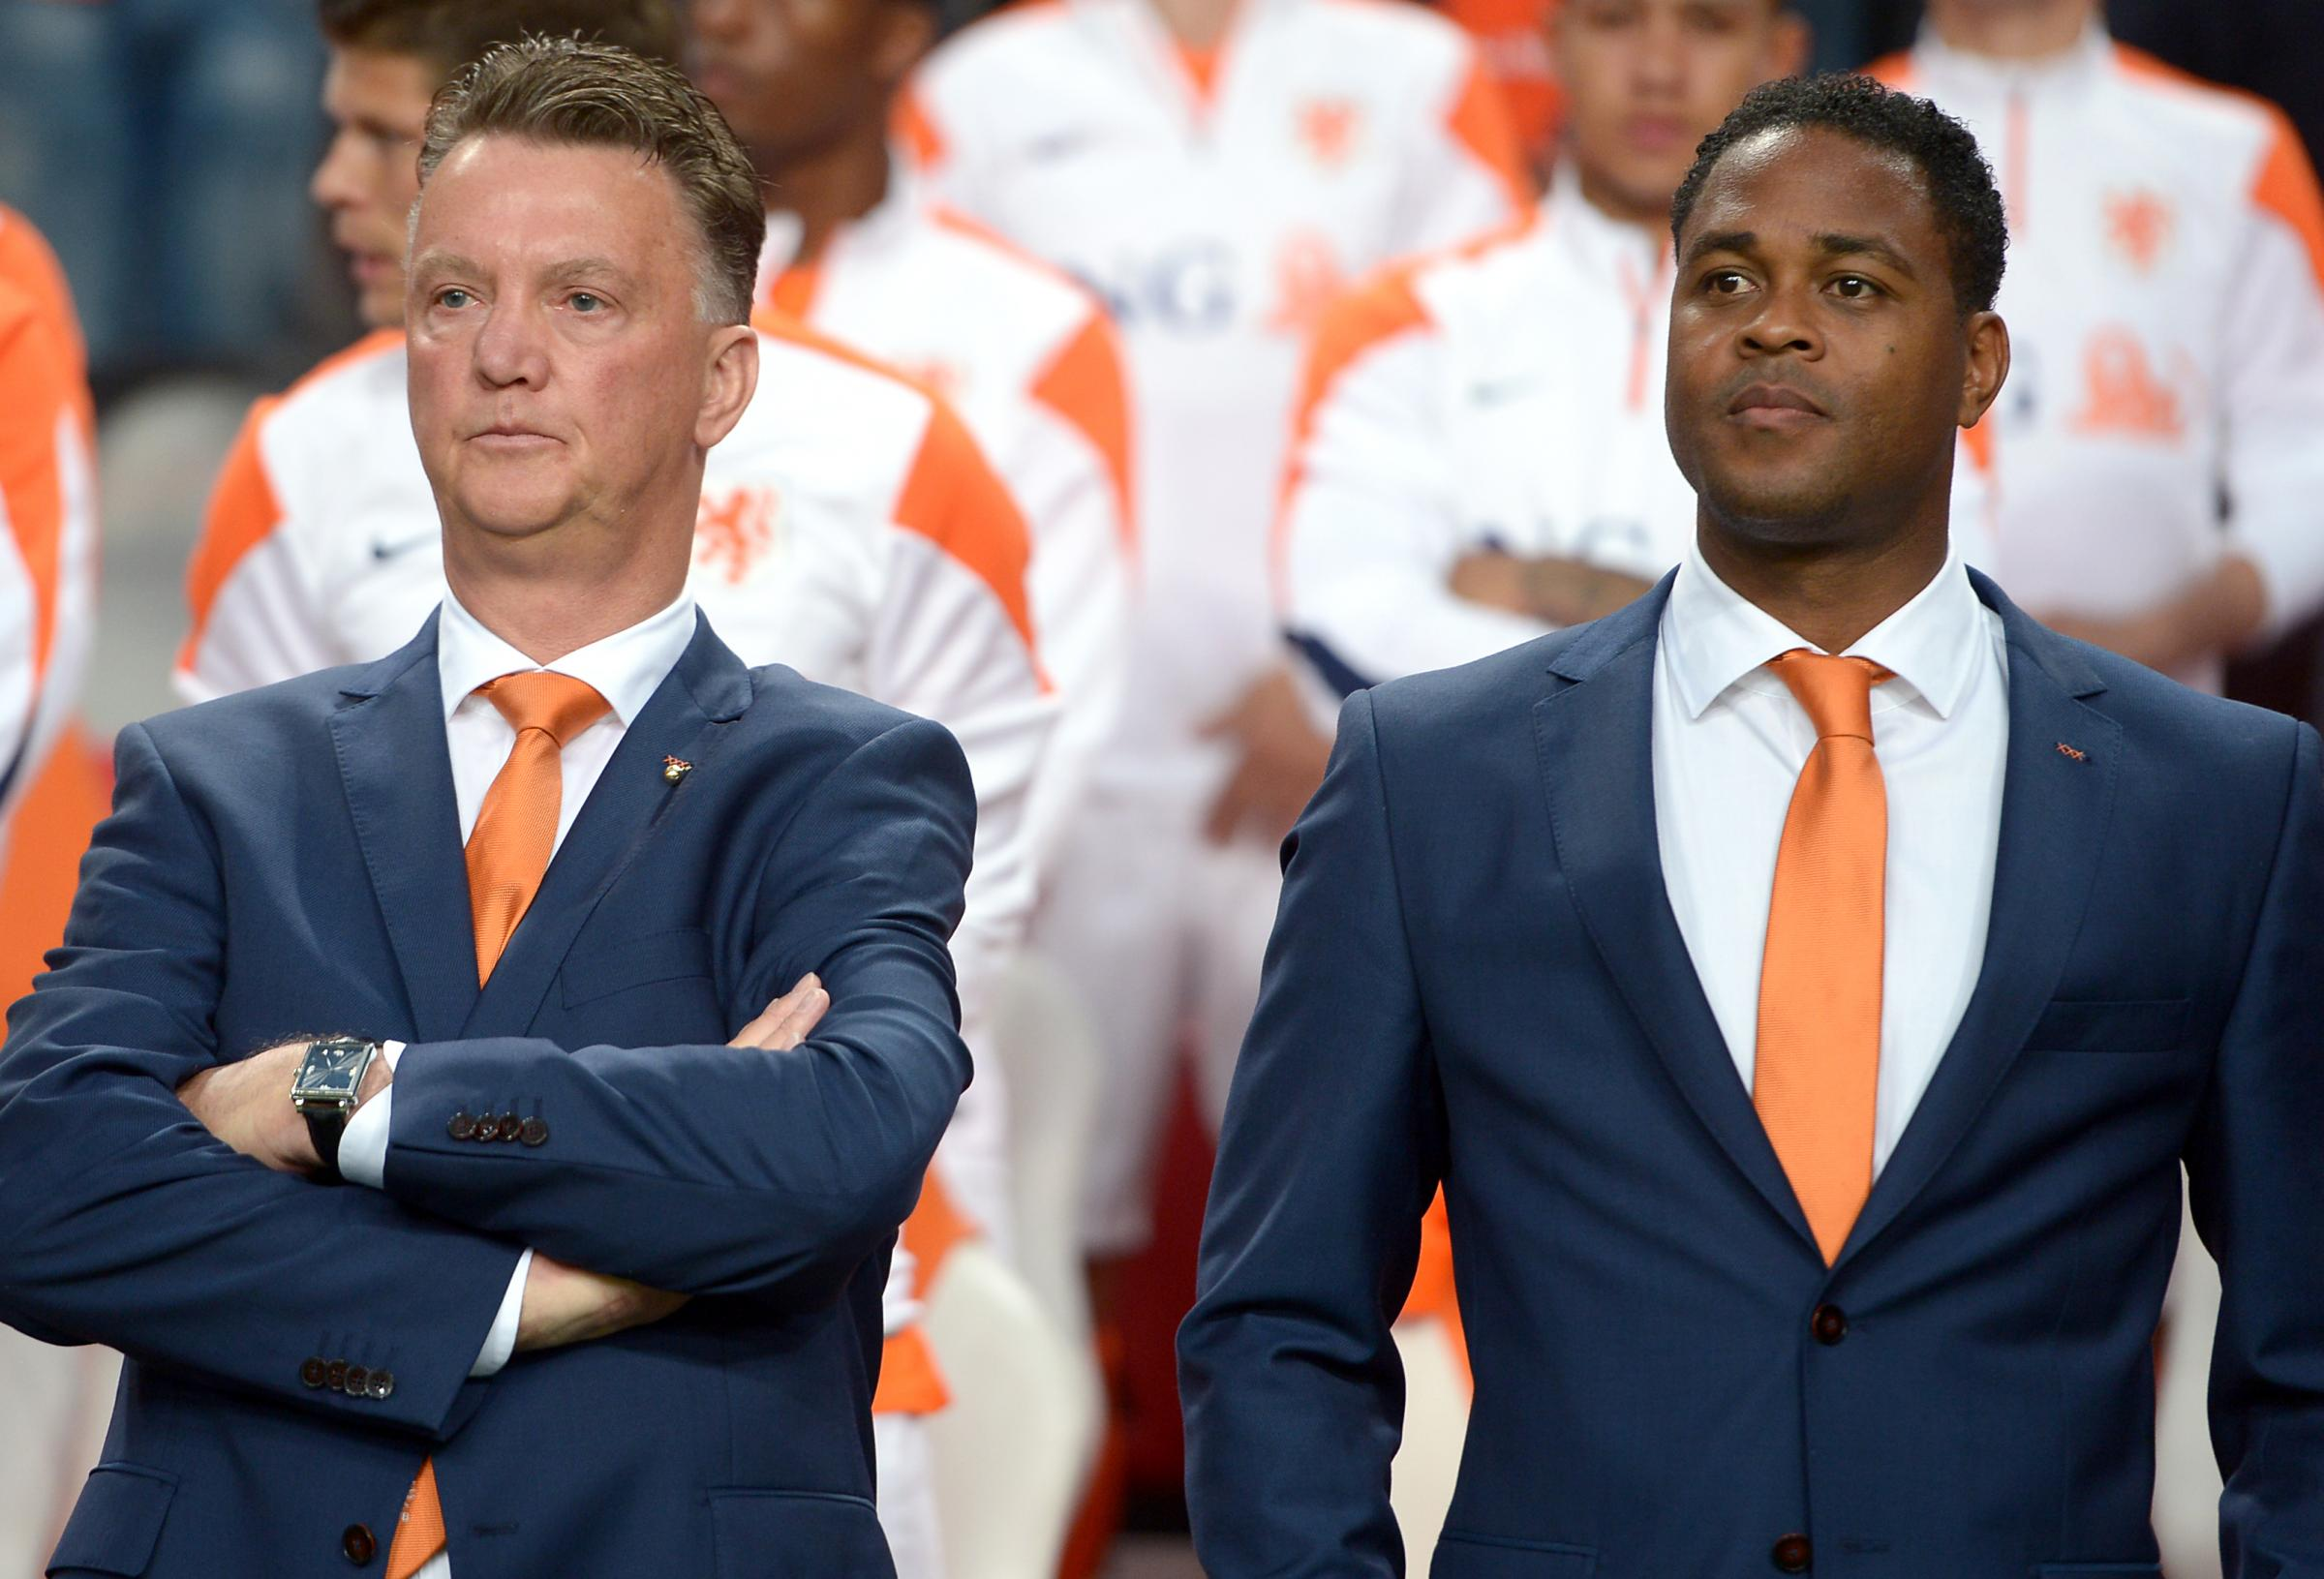 FRONT-RUNNER: Patrick Kluivert, right, pictured when assistant manager of the Netherlands with Louis van Gaal, is vying for favouritism with bookmakers to become the new Oxford United bossPicture: PA Wire/Press Association Images